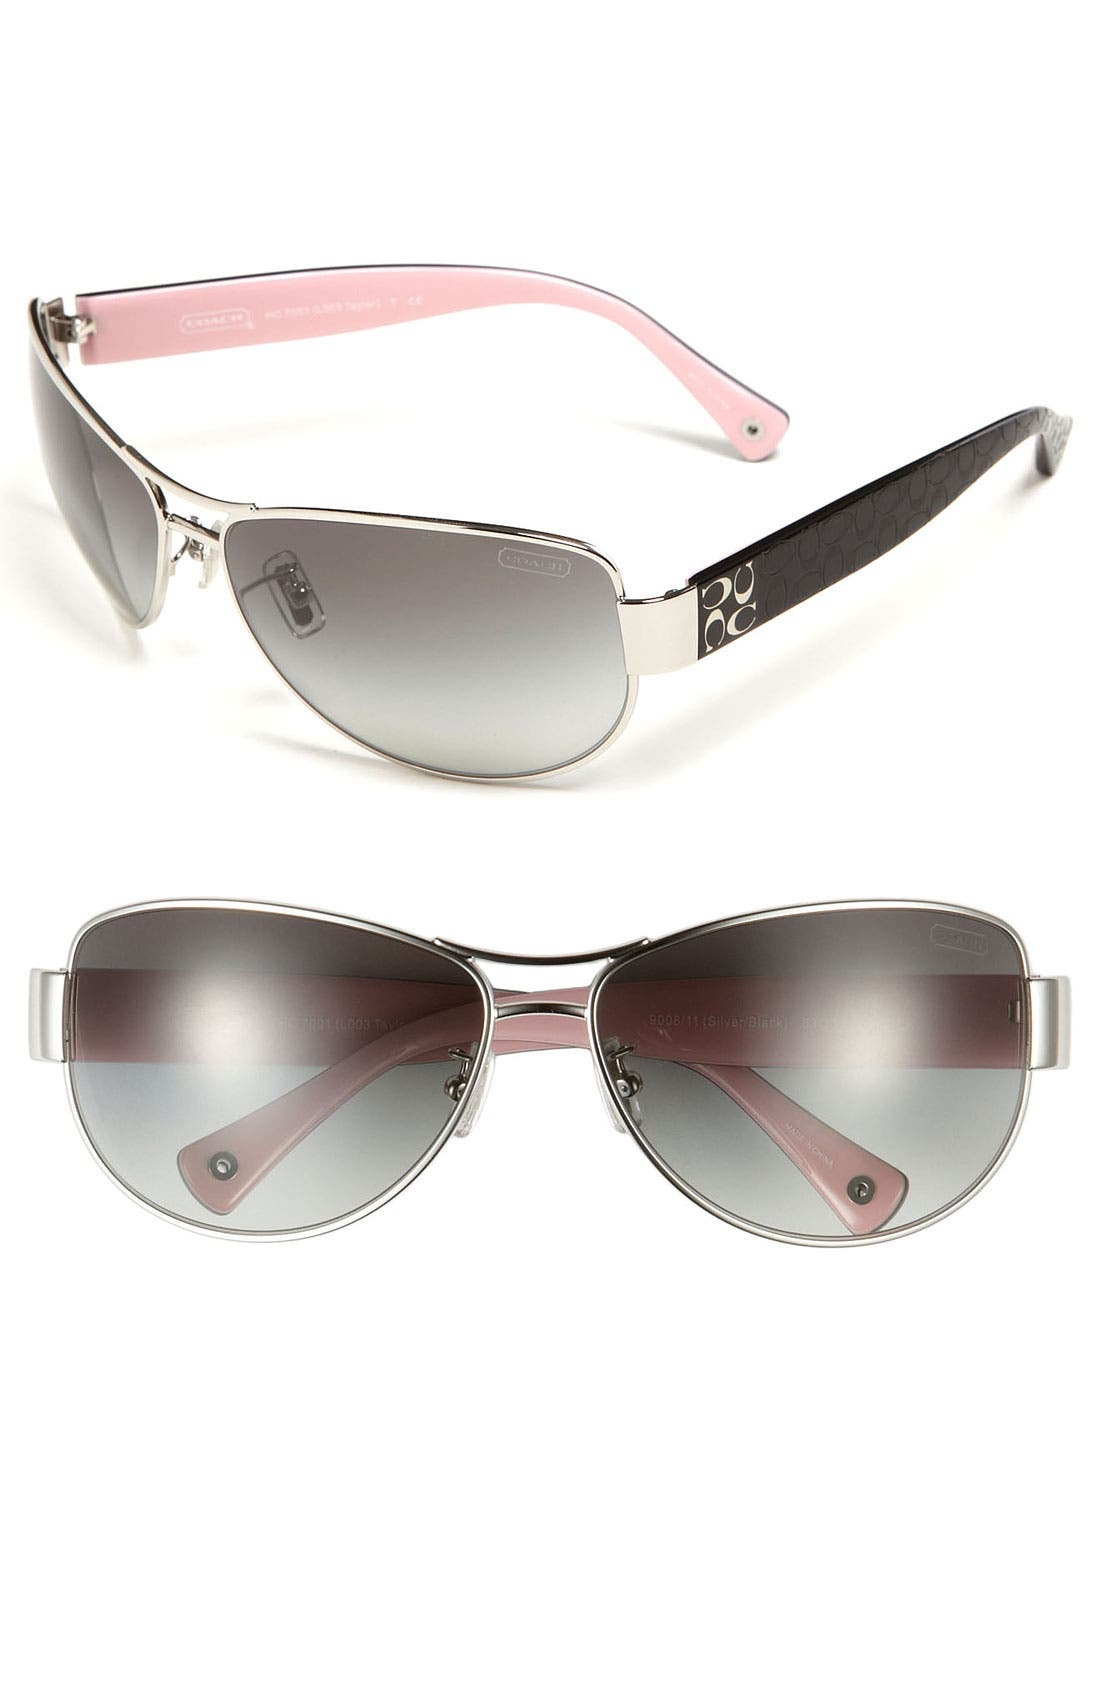 Alternate Image 1 Selected - COACH 63mm Metal Aviator Sunglasses